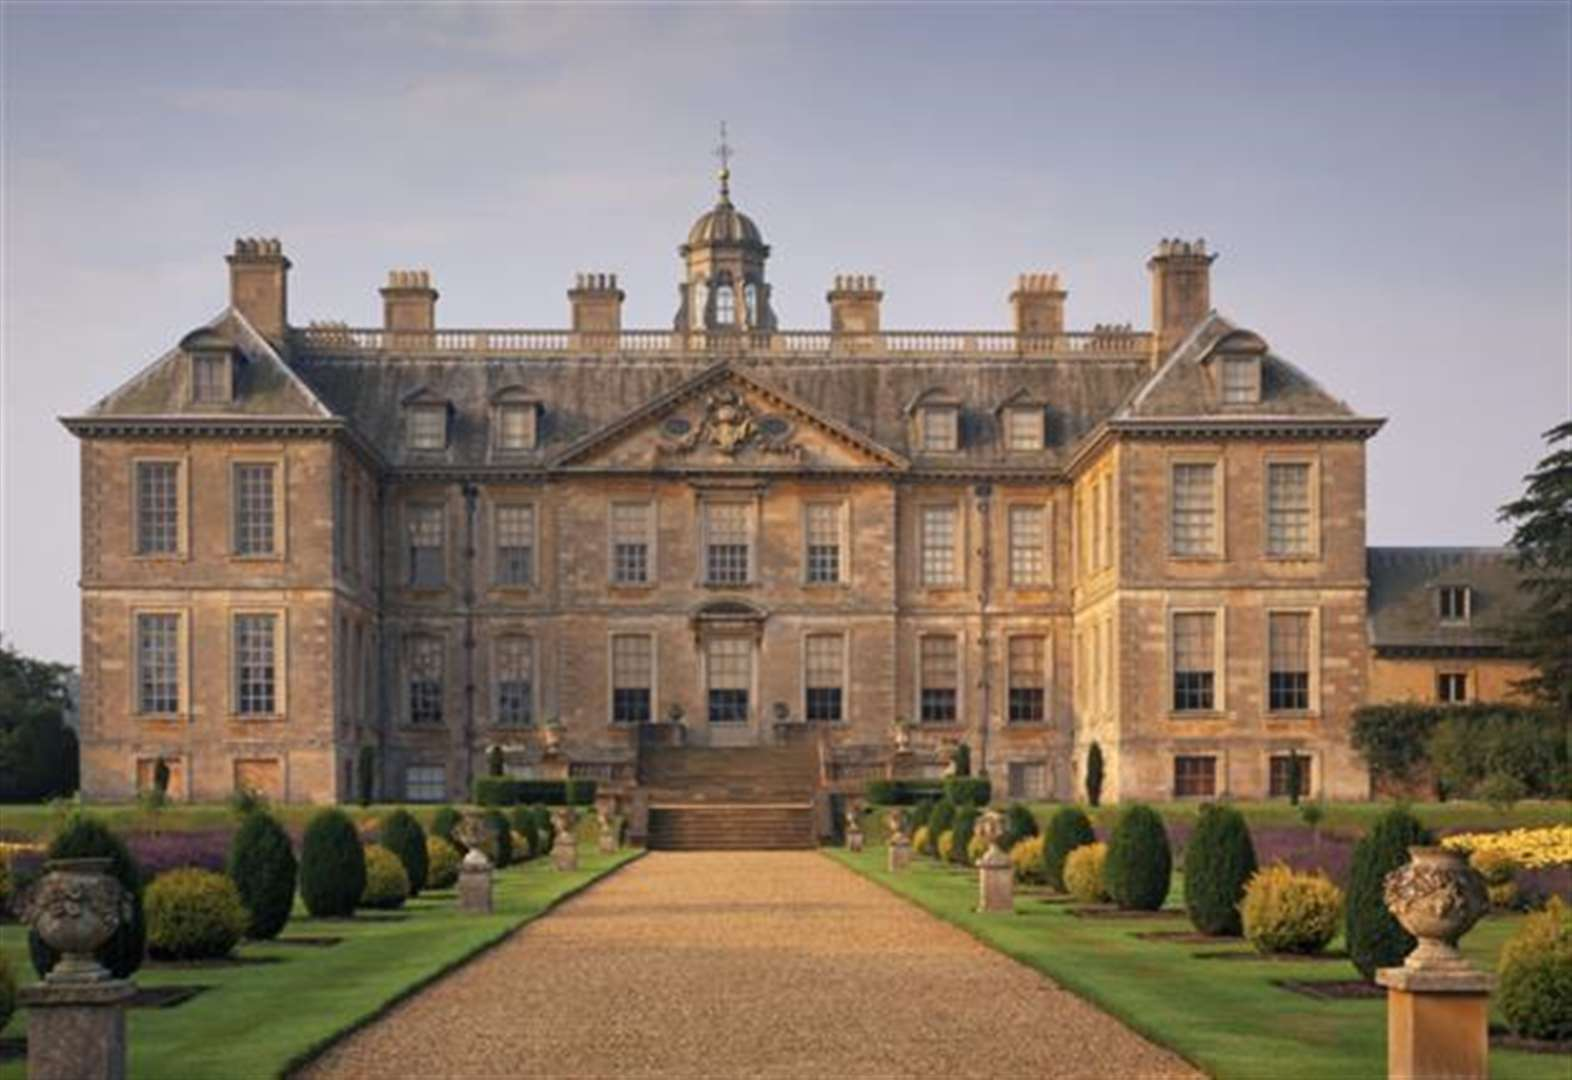 National Trust members to get dedicated entrance at Belton House near Grantham